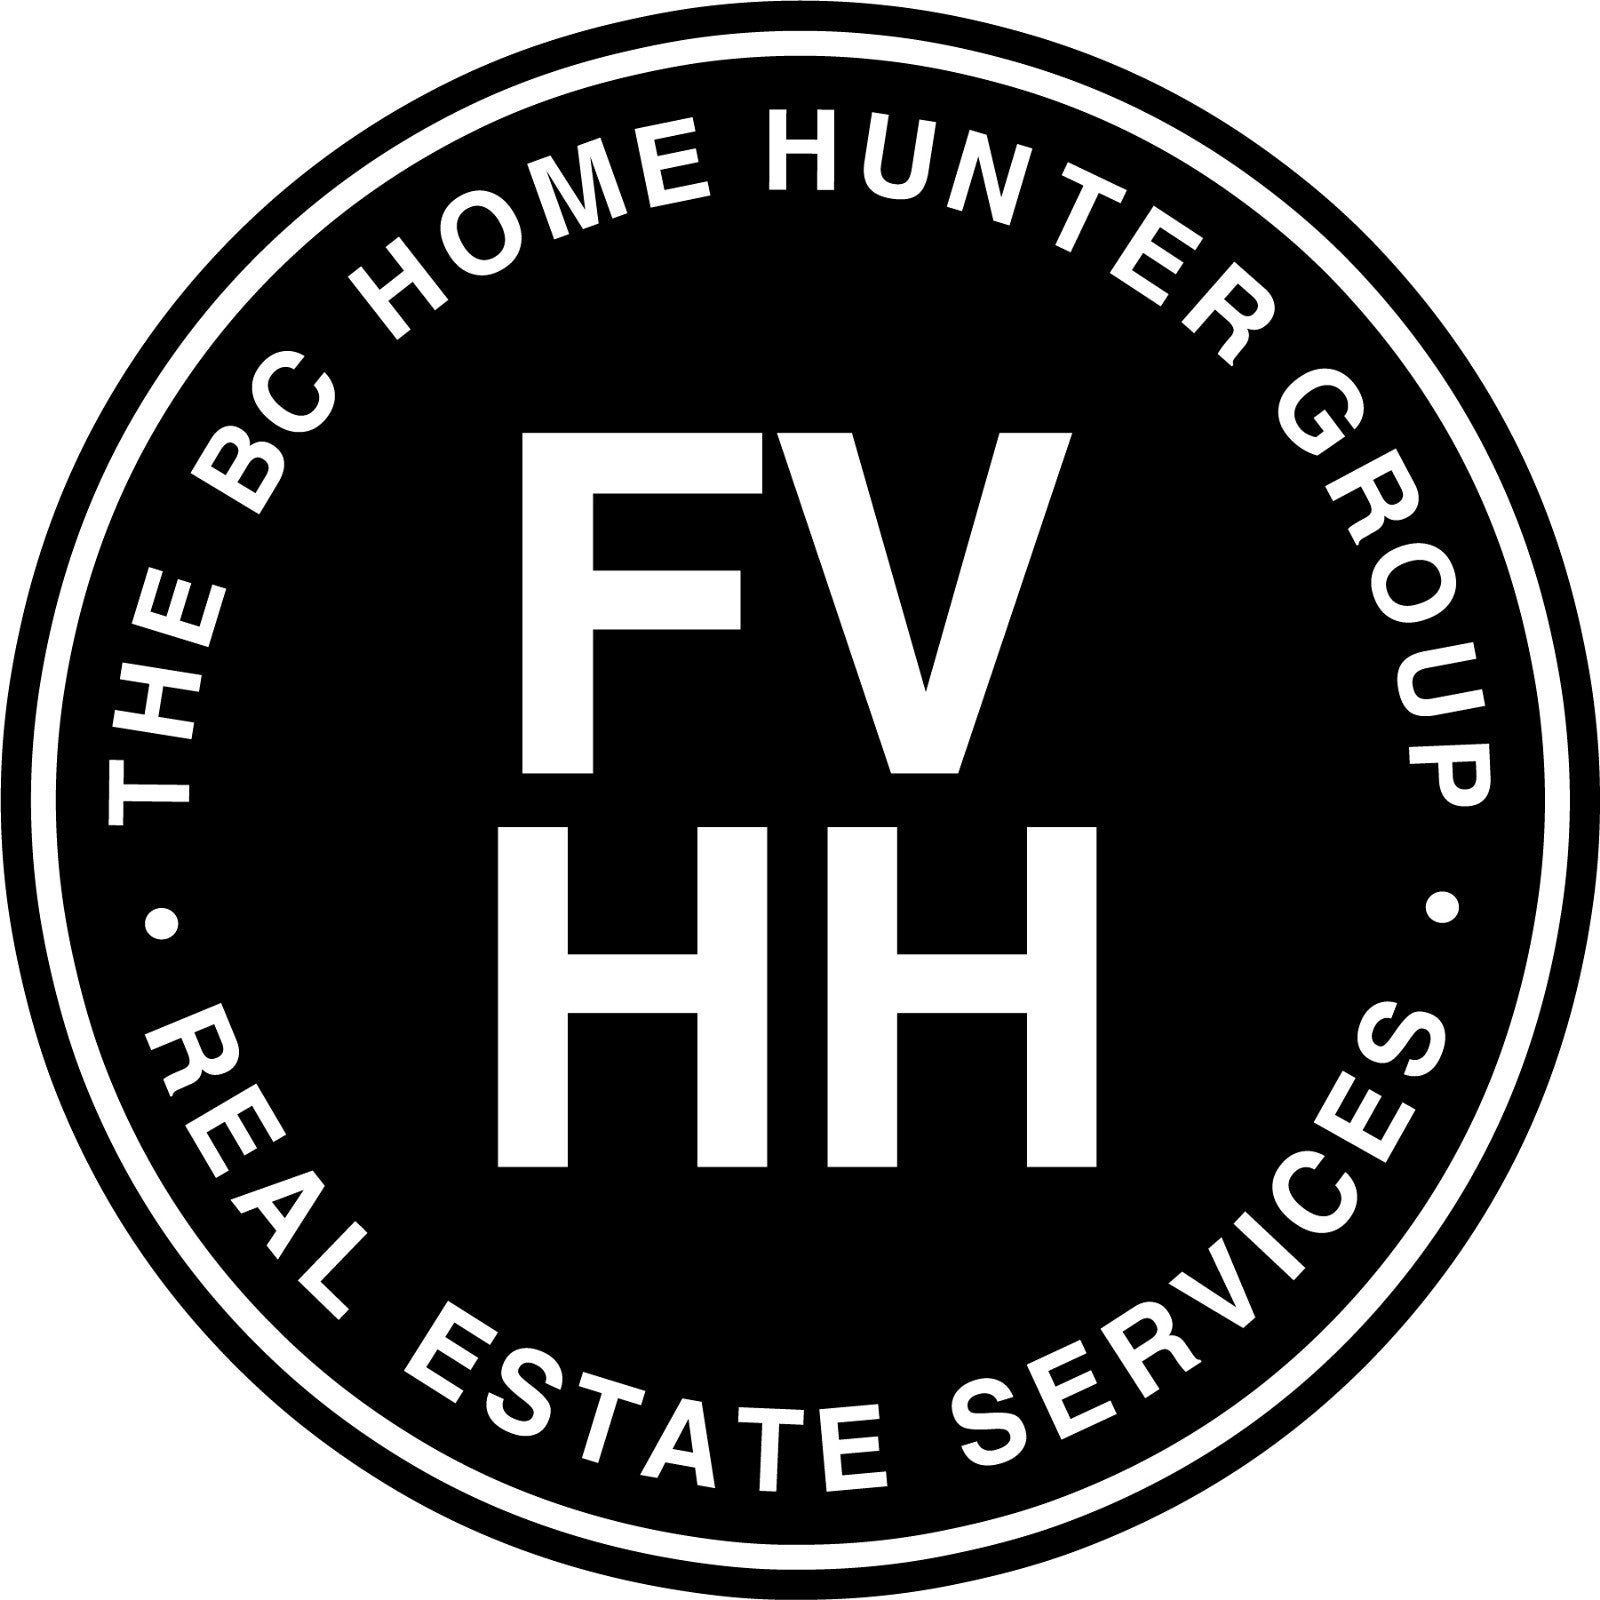 THE BC HOME HUNTER GROUP l AWARD WINNING URBAN & SUBURBAN METRO VANCOUVER l NORTH SHORE I FRASER VALLEY l WEST COAST I BC REAL ESTATE EXPERTS 604-767-6736 #BCHOMEHUNTER.COM #BCHH #WESELLBC.COM #WELOVEBC.COM #Vancouver #NorthShore #WestVancouver #NorthVancouver #FraserValley #CoalHarbour #Kerrisdale #Kitsilano #PointGrey #Marpole #Dunbar #Oakridge #Coquitlam #EastVan #NorthShoreHomehunter #Yaletown #FraserValleyHomeHunter #VancouverHomeHunter #LynnValley #Lonsdale #WhiteRock #VancouverHomeHunter #FraserValleyHomeHunter #WhiteRockHomeHunter #SouthSurreyHomeHunter  @BCHOMEHUNTER  THE BC HOME HUNTER GROUP  AWARD WINNING URBAN & SUBURBAN REAL ESTATE TEAM WITH HEART 604-767-6736  METRO VANCOUVER I FRASER VALLEY I BC  #Vancouver #WhiteRock #SouthSurrey #Starbucks #WestVancouver #Langley #MapleRidge #NorthVancouver #Langley #FraserValley #Burnaby #FortLangley #PittMeadows #Delta #Richmond #CoalHarbour #Surrey #Abbotsford #FraserValley #Kerrisdale #Cloverdale #Coquitlam #EastVan #Richmond #PortMoody #Yaletown #CrescentBeach #BCHHREALTY #MorganCreek #PortMoody #Burnaby #WeLoveBC #OceanPark #FraserValleyHomeHunter #VancouverHomeHunter